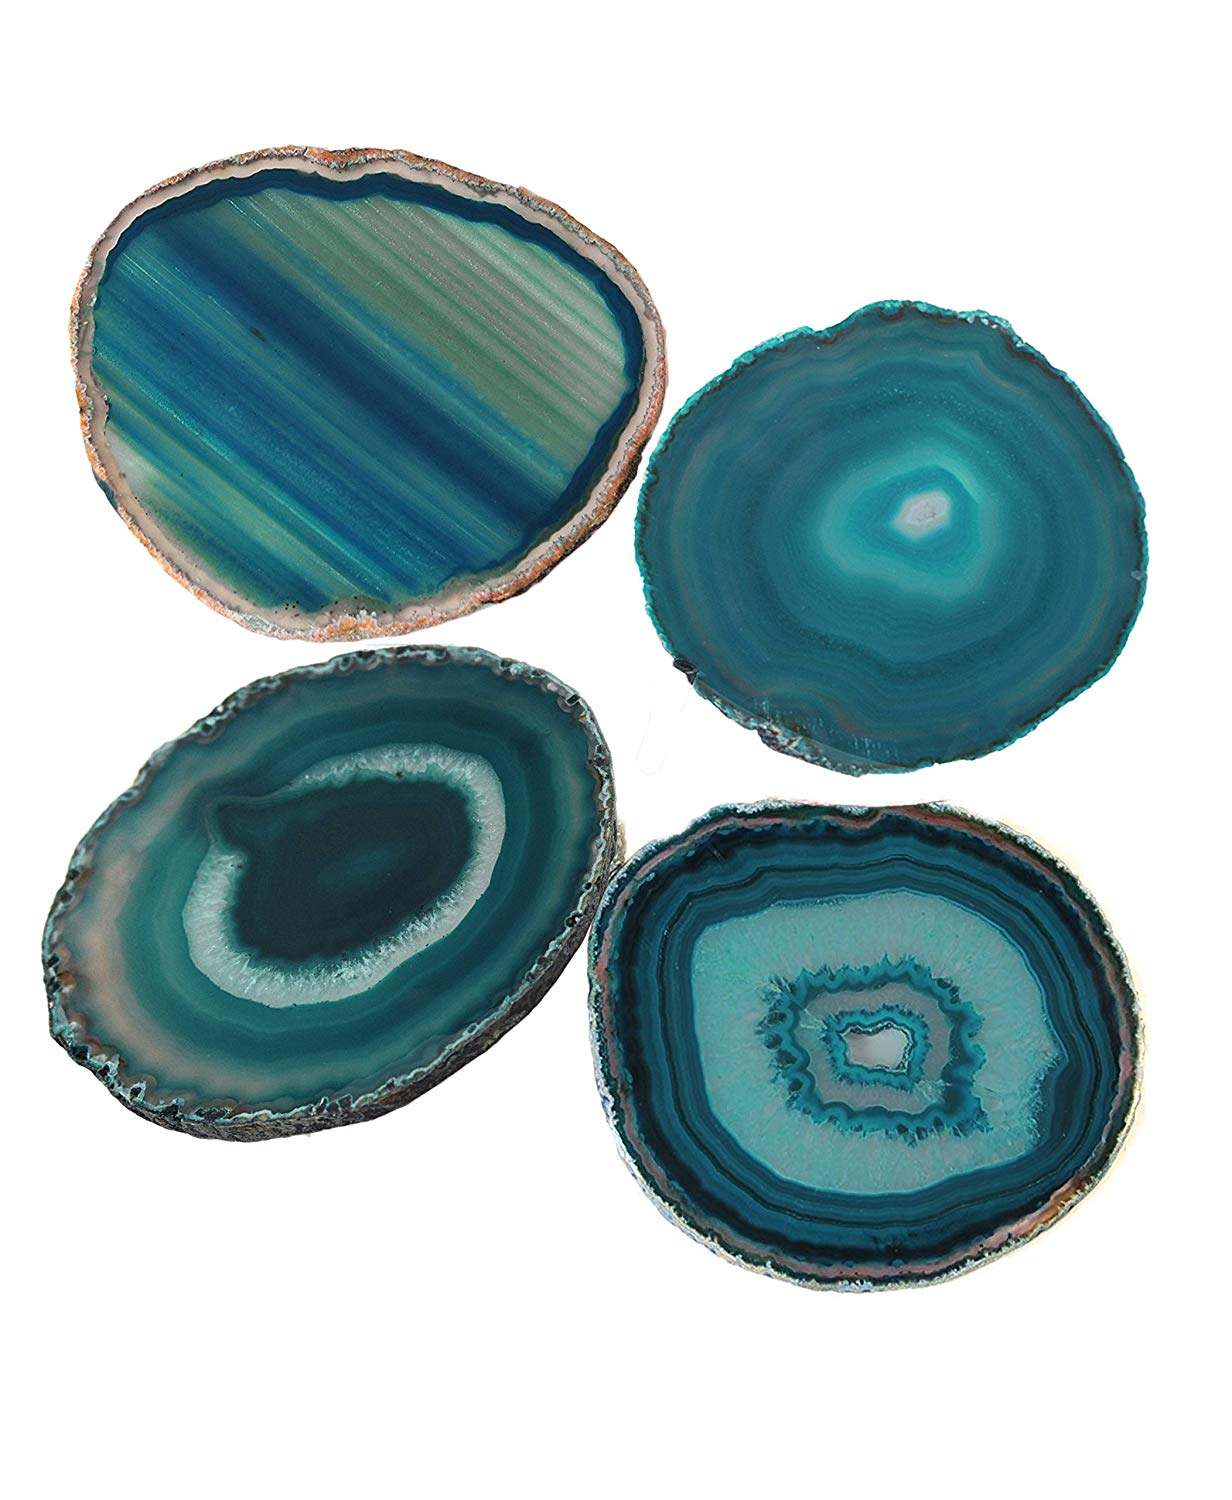 Dyed Sliced Genuine Brazilian Aqua Agate Drink Coasters with Rubber Bumper Set of 4